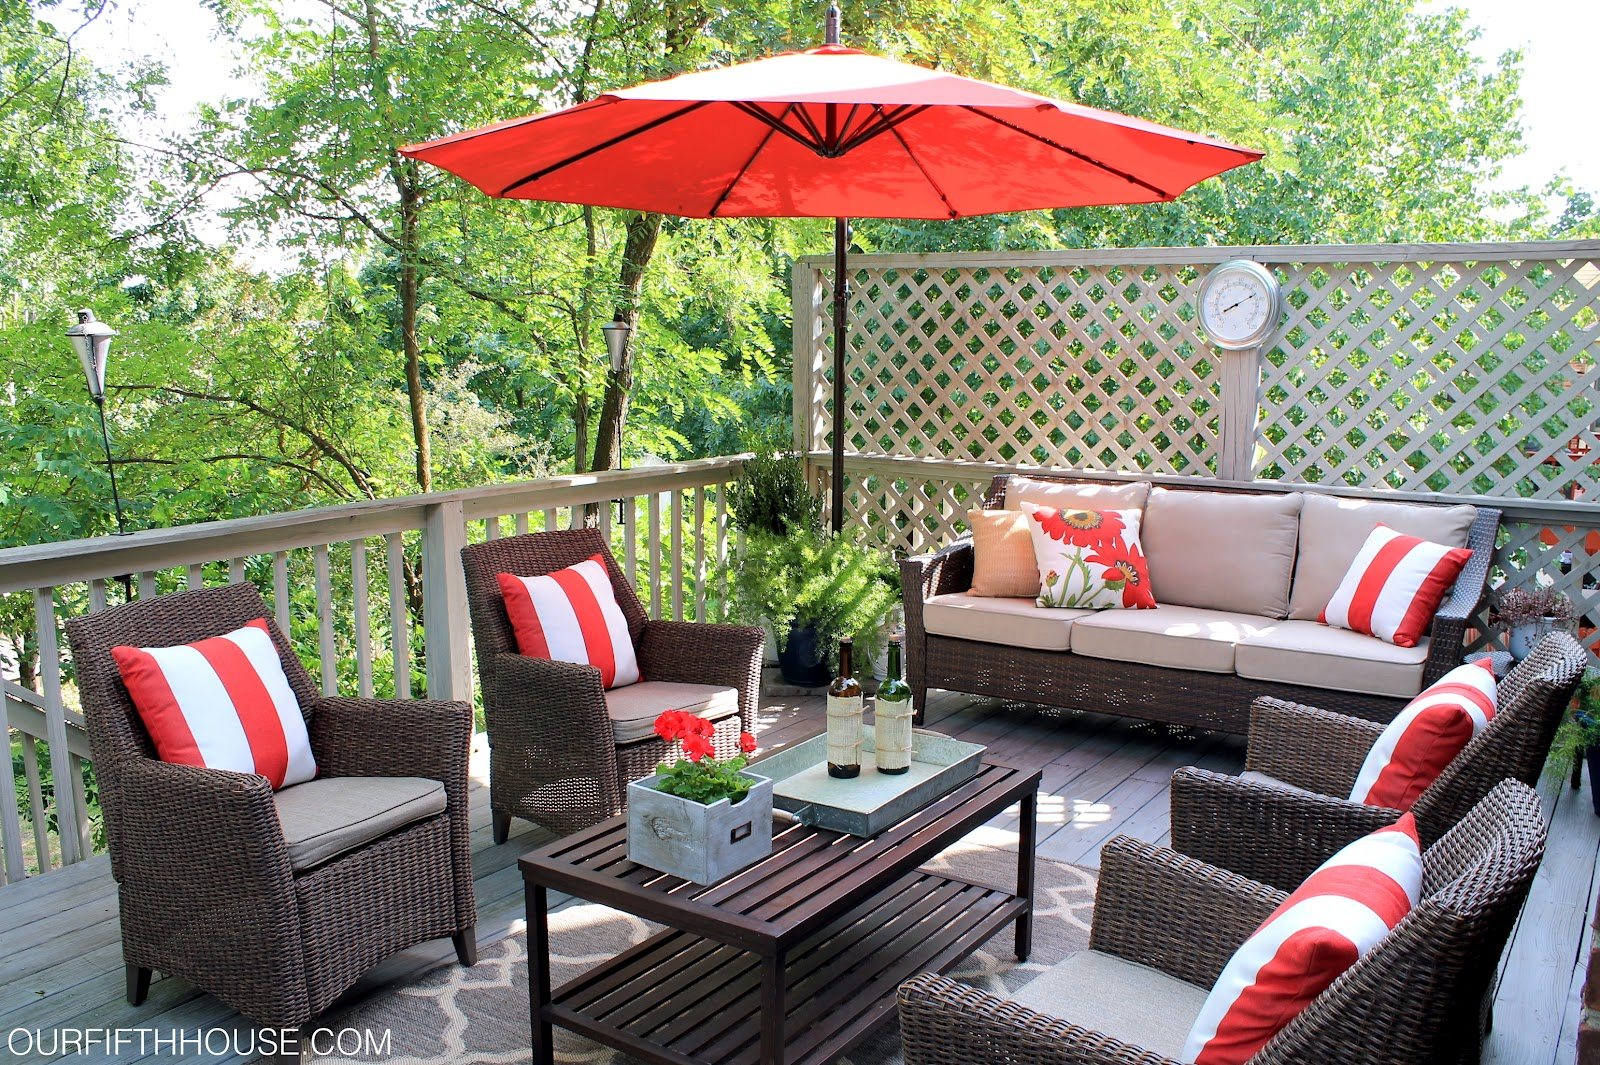 Outdoor living deck updates our fifth house for Patio decorating photos